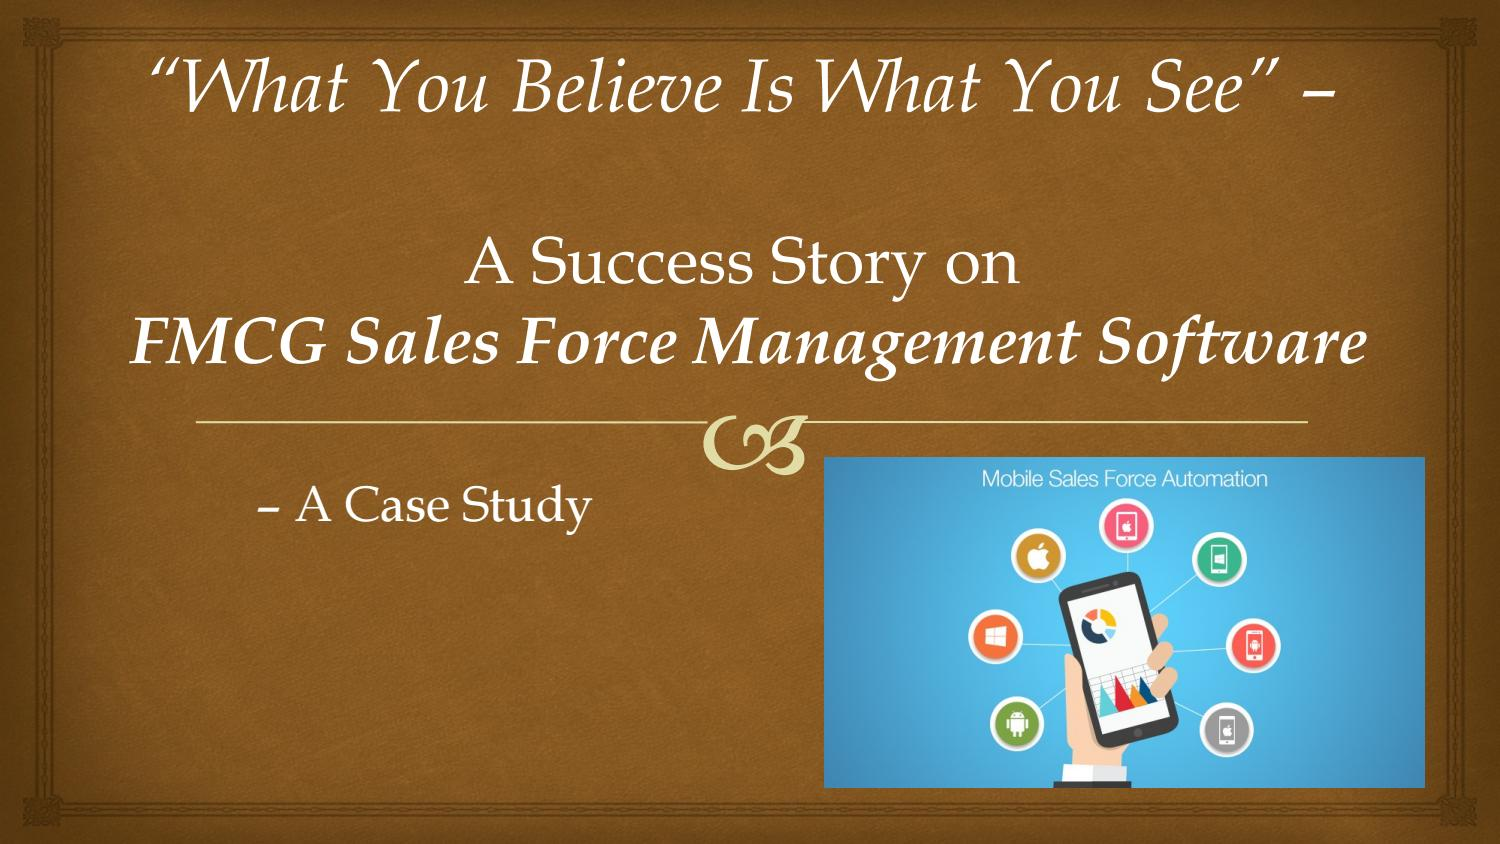 A Success Story on FMCG Van Sales Tracking App – From the